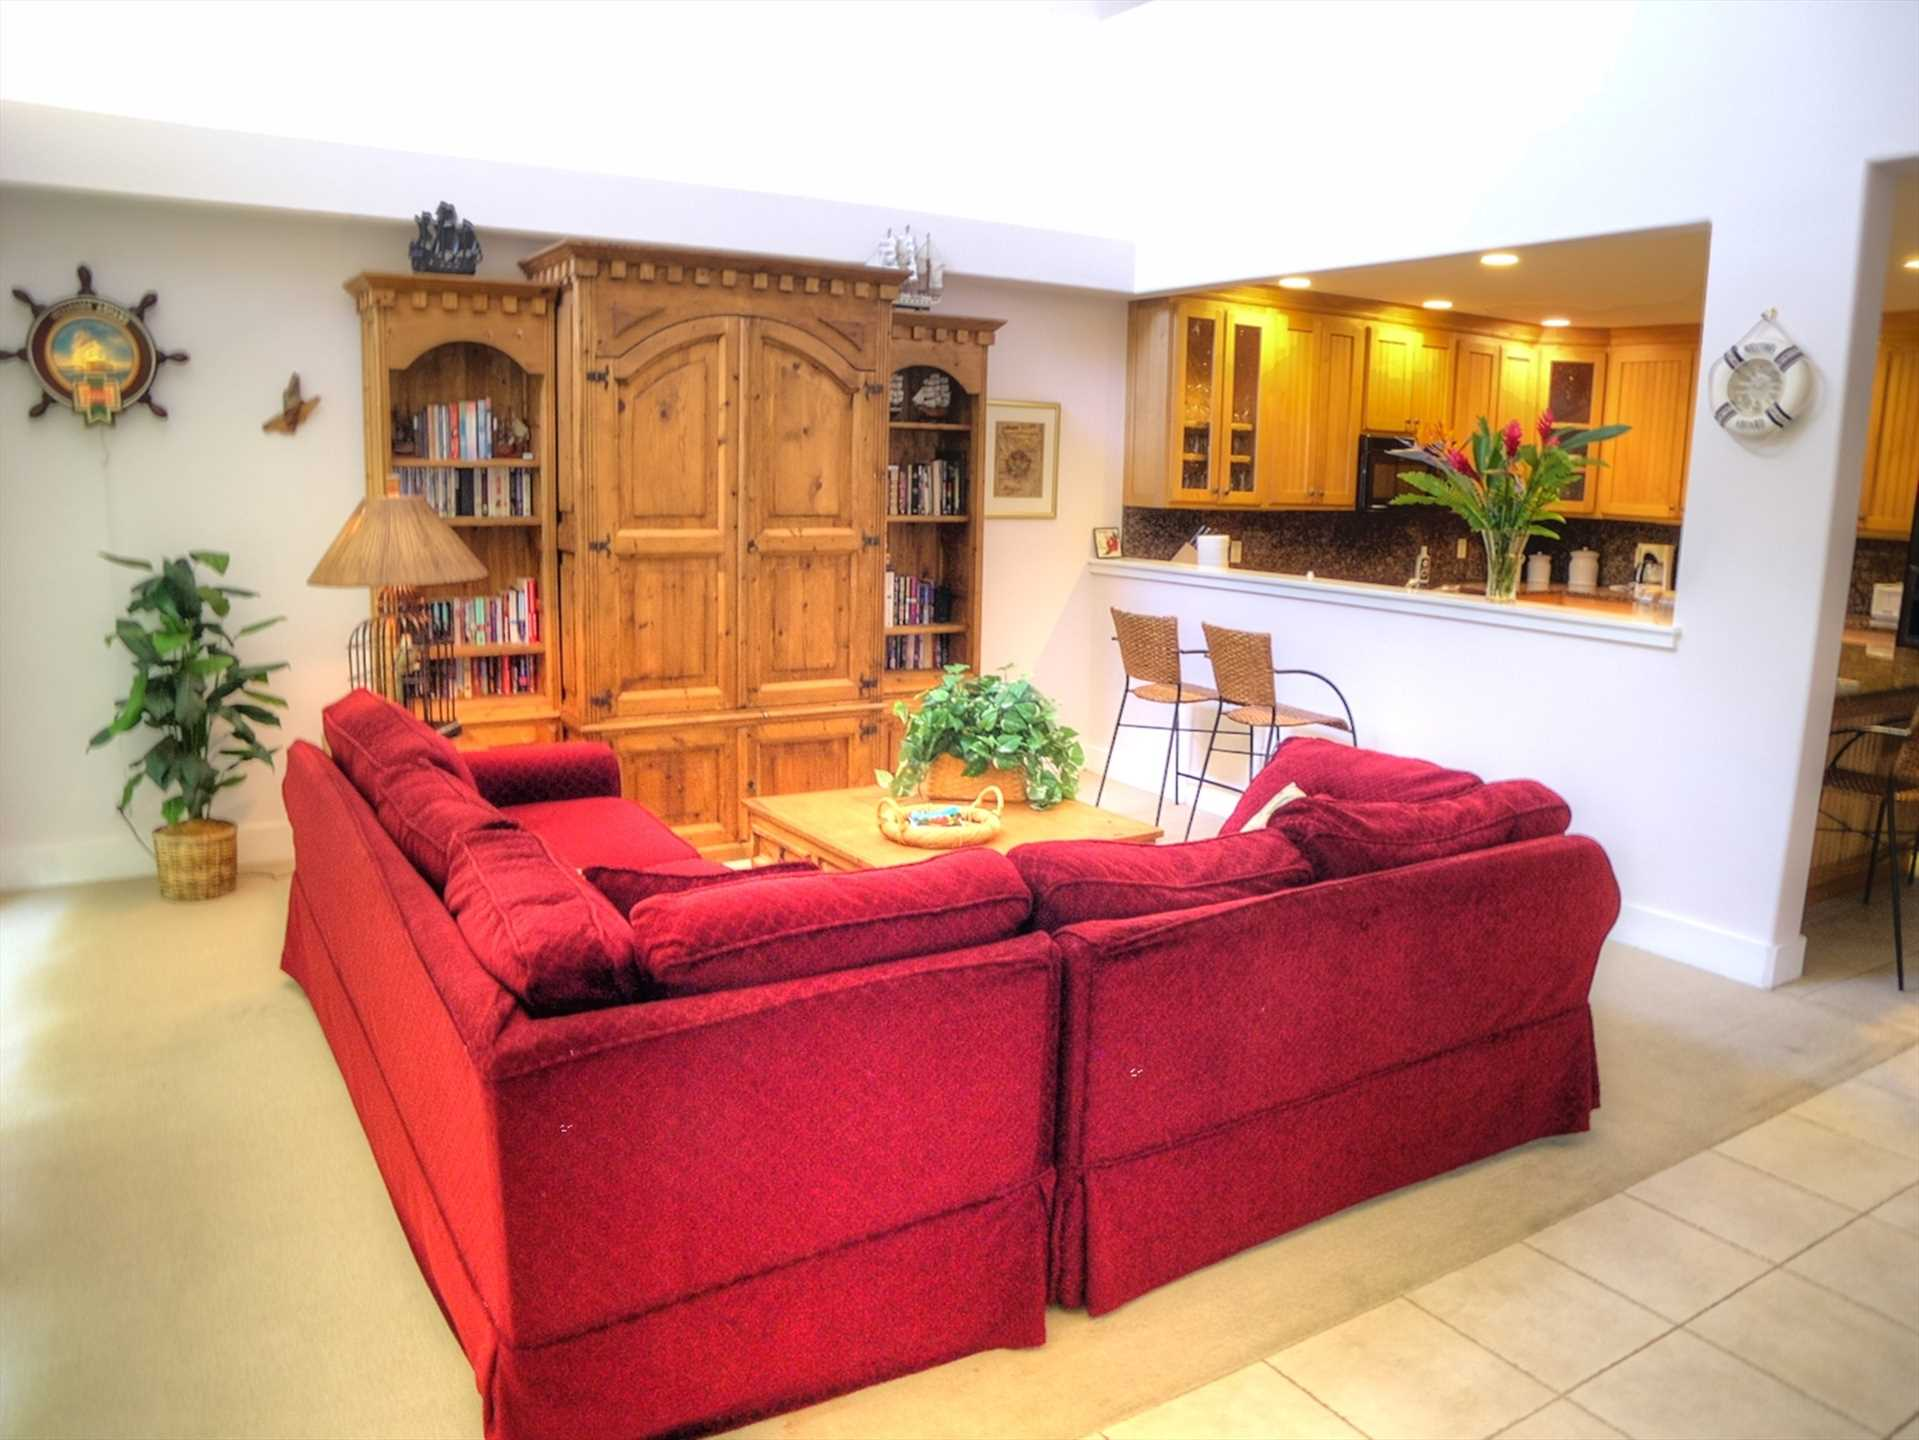 Comfortable family seating in Living Room